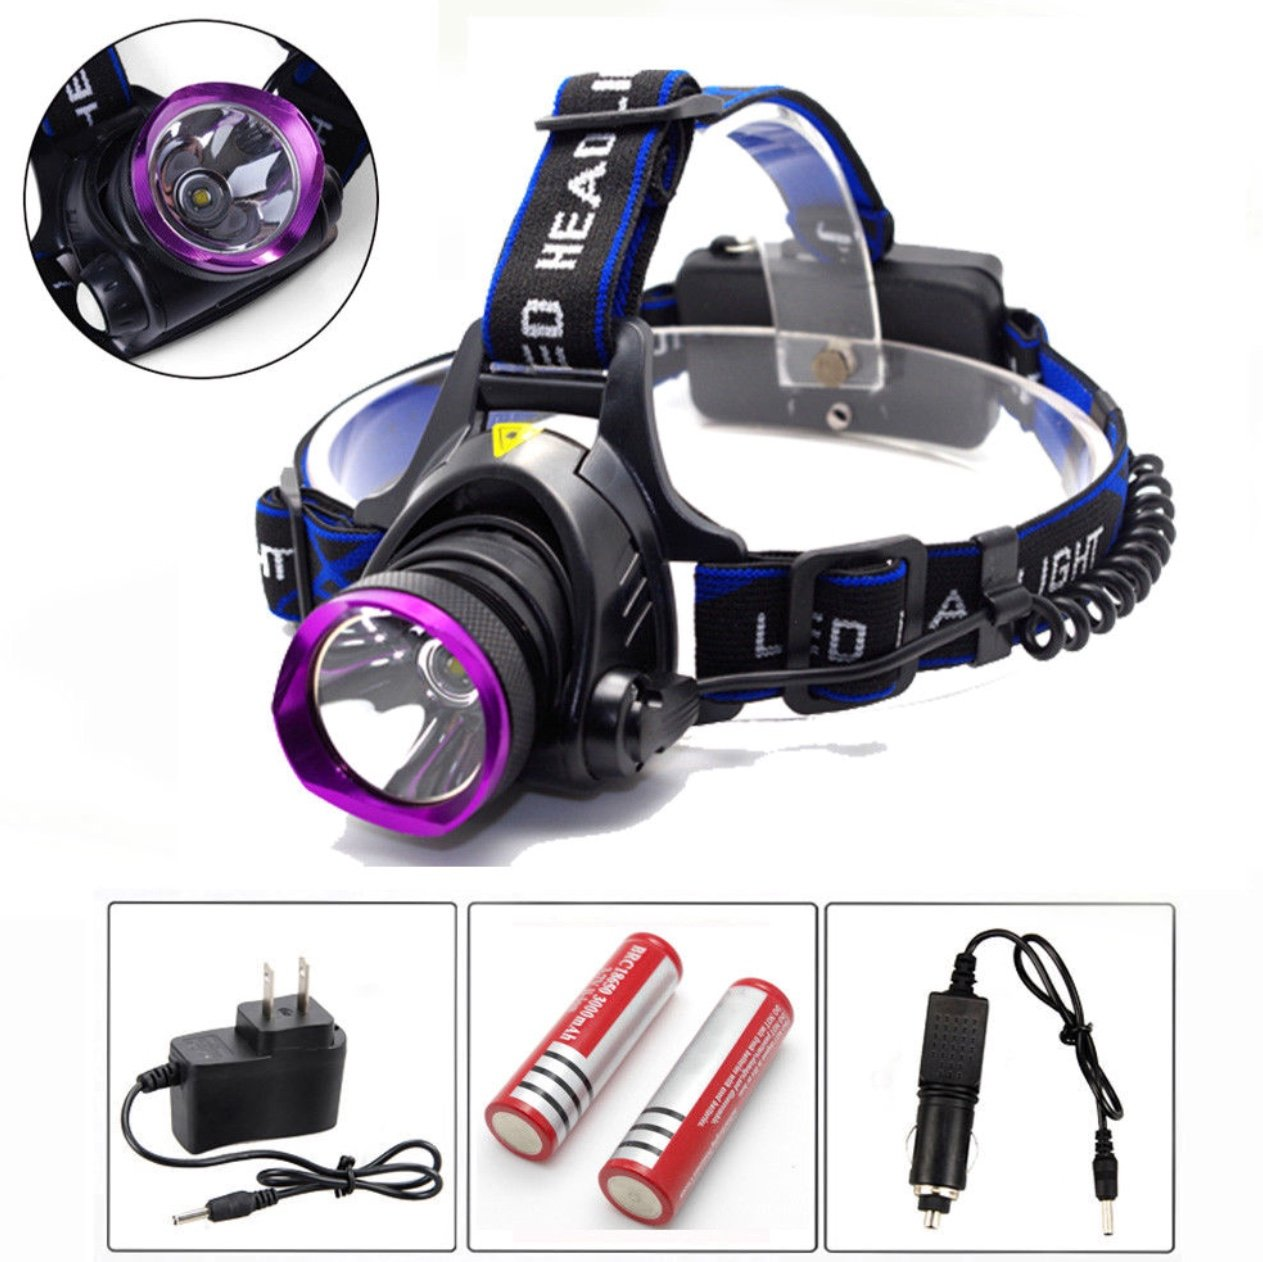 5000LM LED Rechargeable Headlight Head Lamp + 2Pcs 18650 + Charger best for adventure